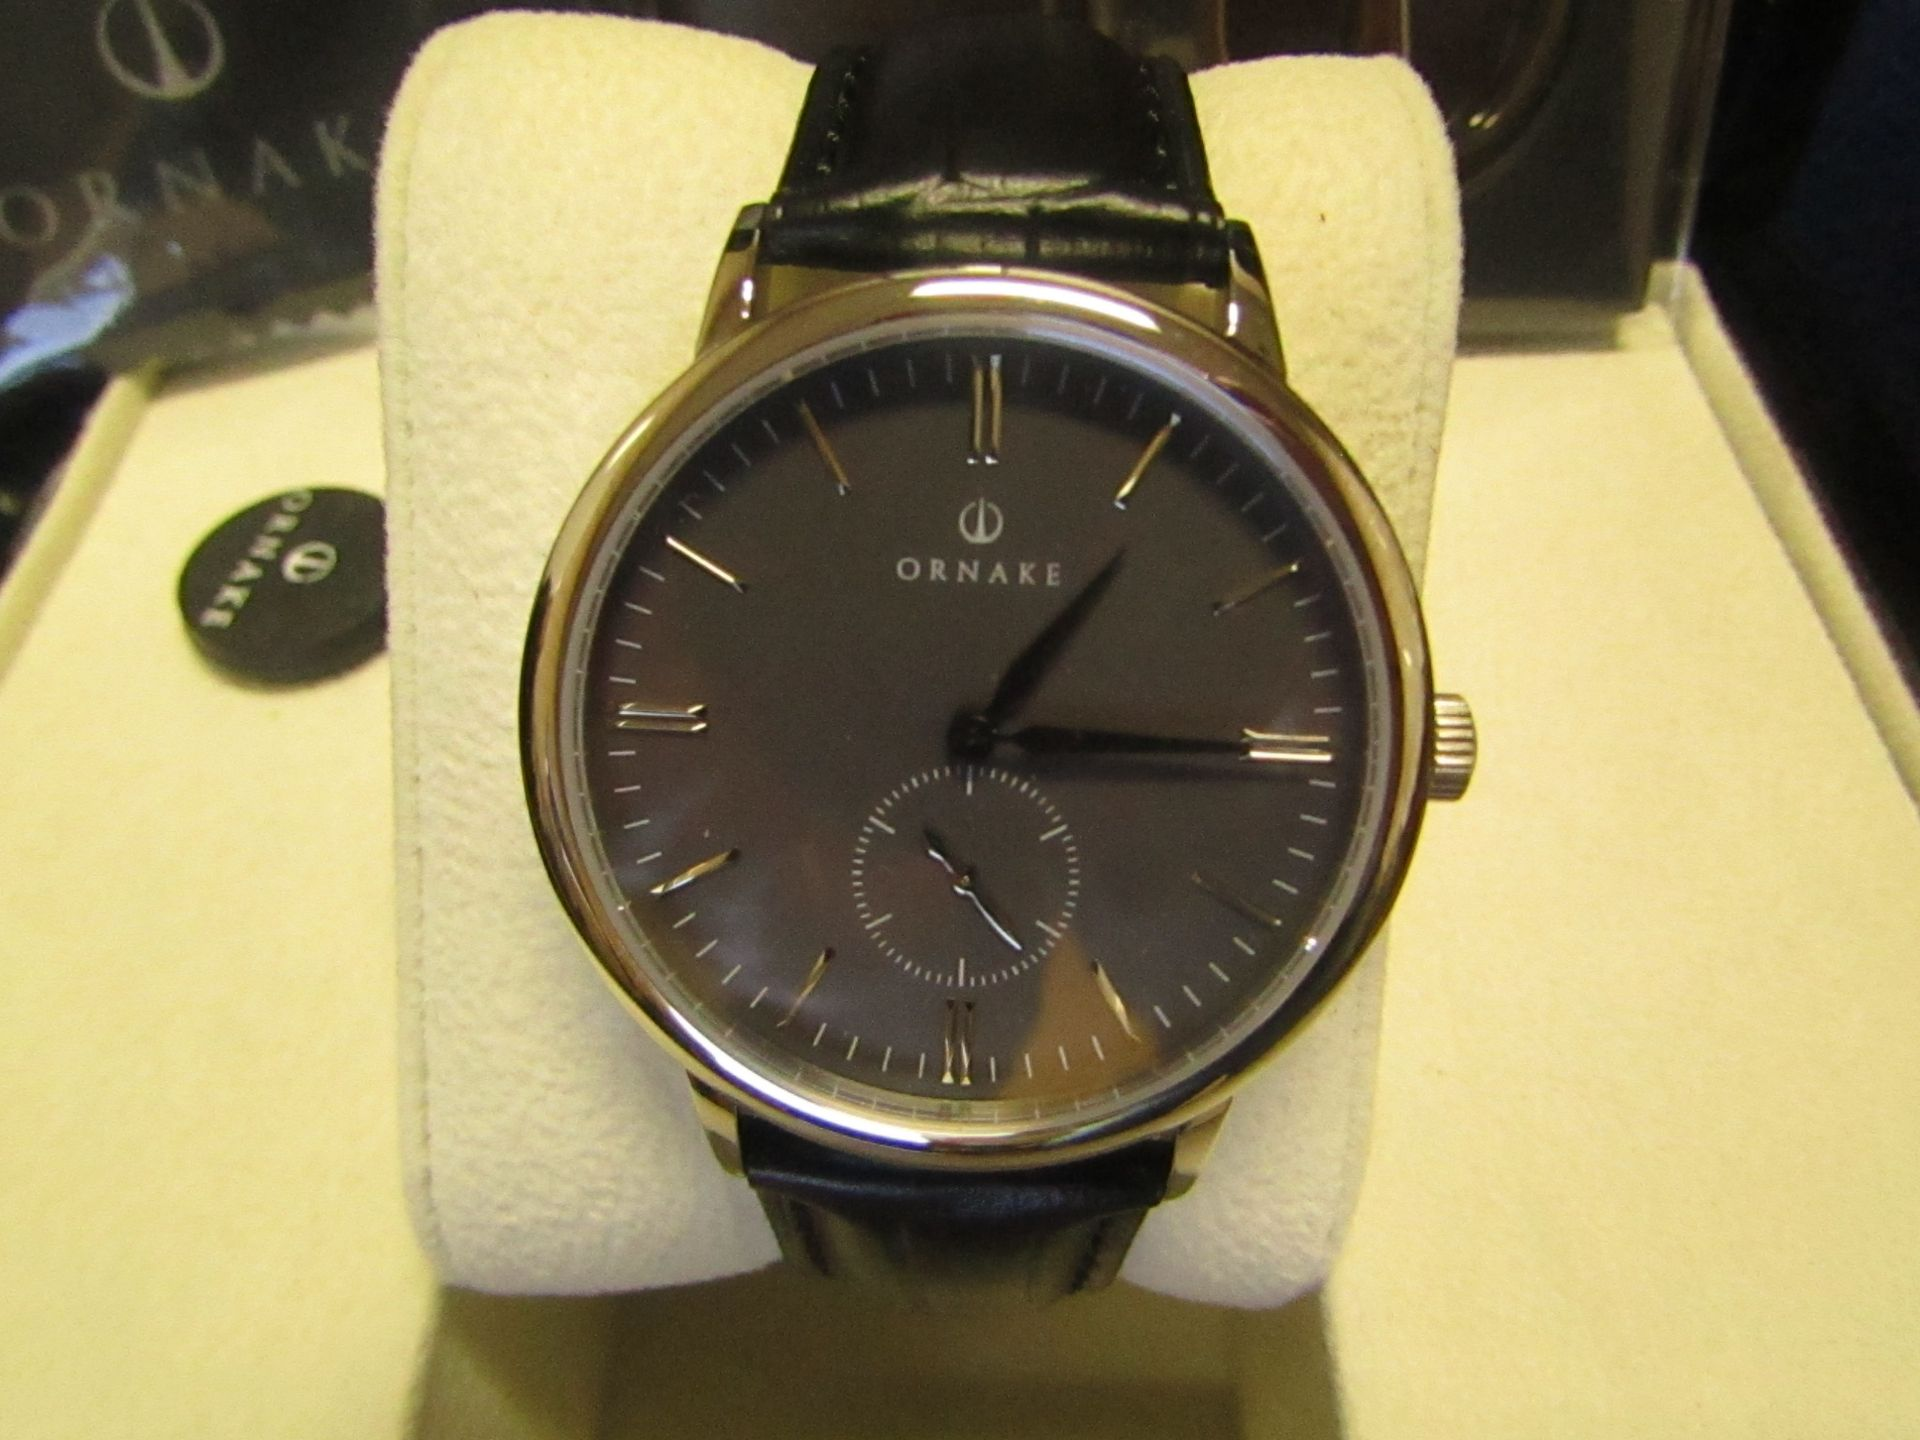 Ornake watch, miyota movement, black and Silver with black leather strap, new, Boxed and ticking. - Image 2 of 2